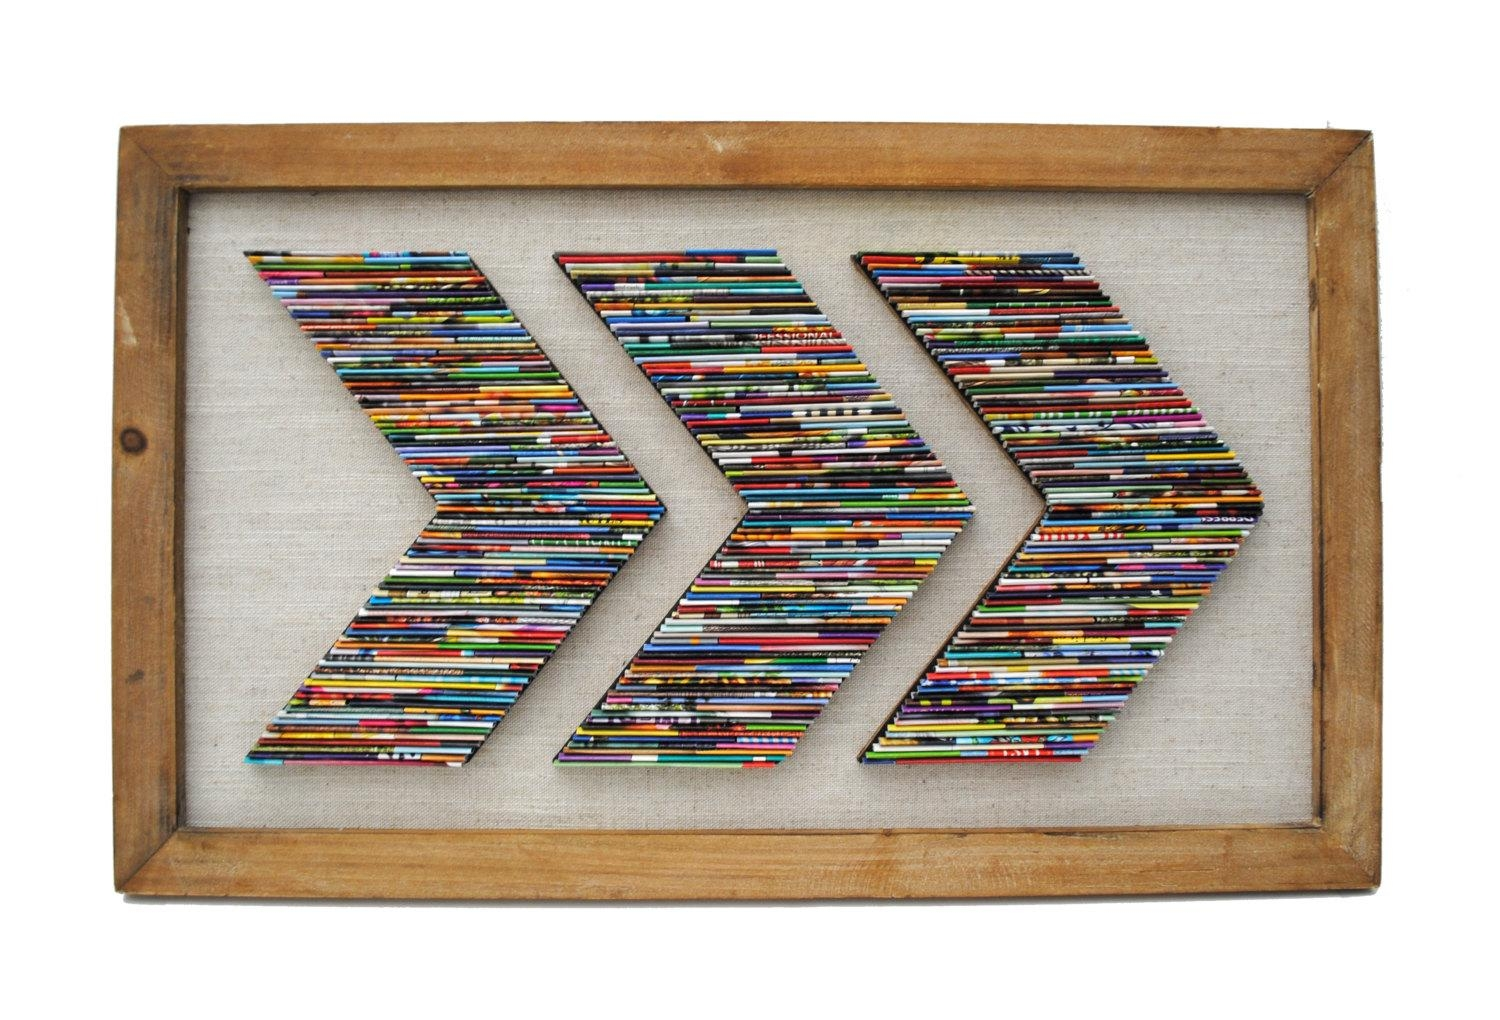 Chevron Recycled Magazine Wall Art  Made From Recycled Magazines Throughout Recycled Wall Art (Image 6 of 20)